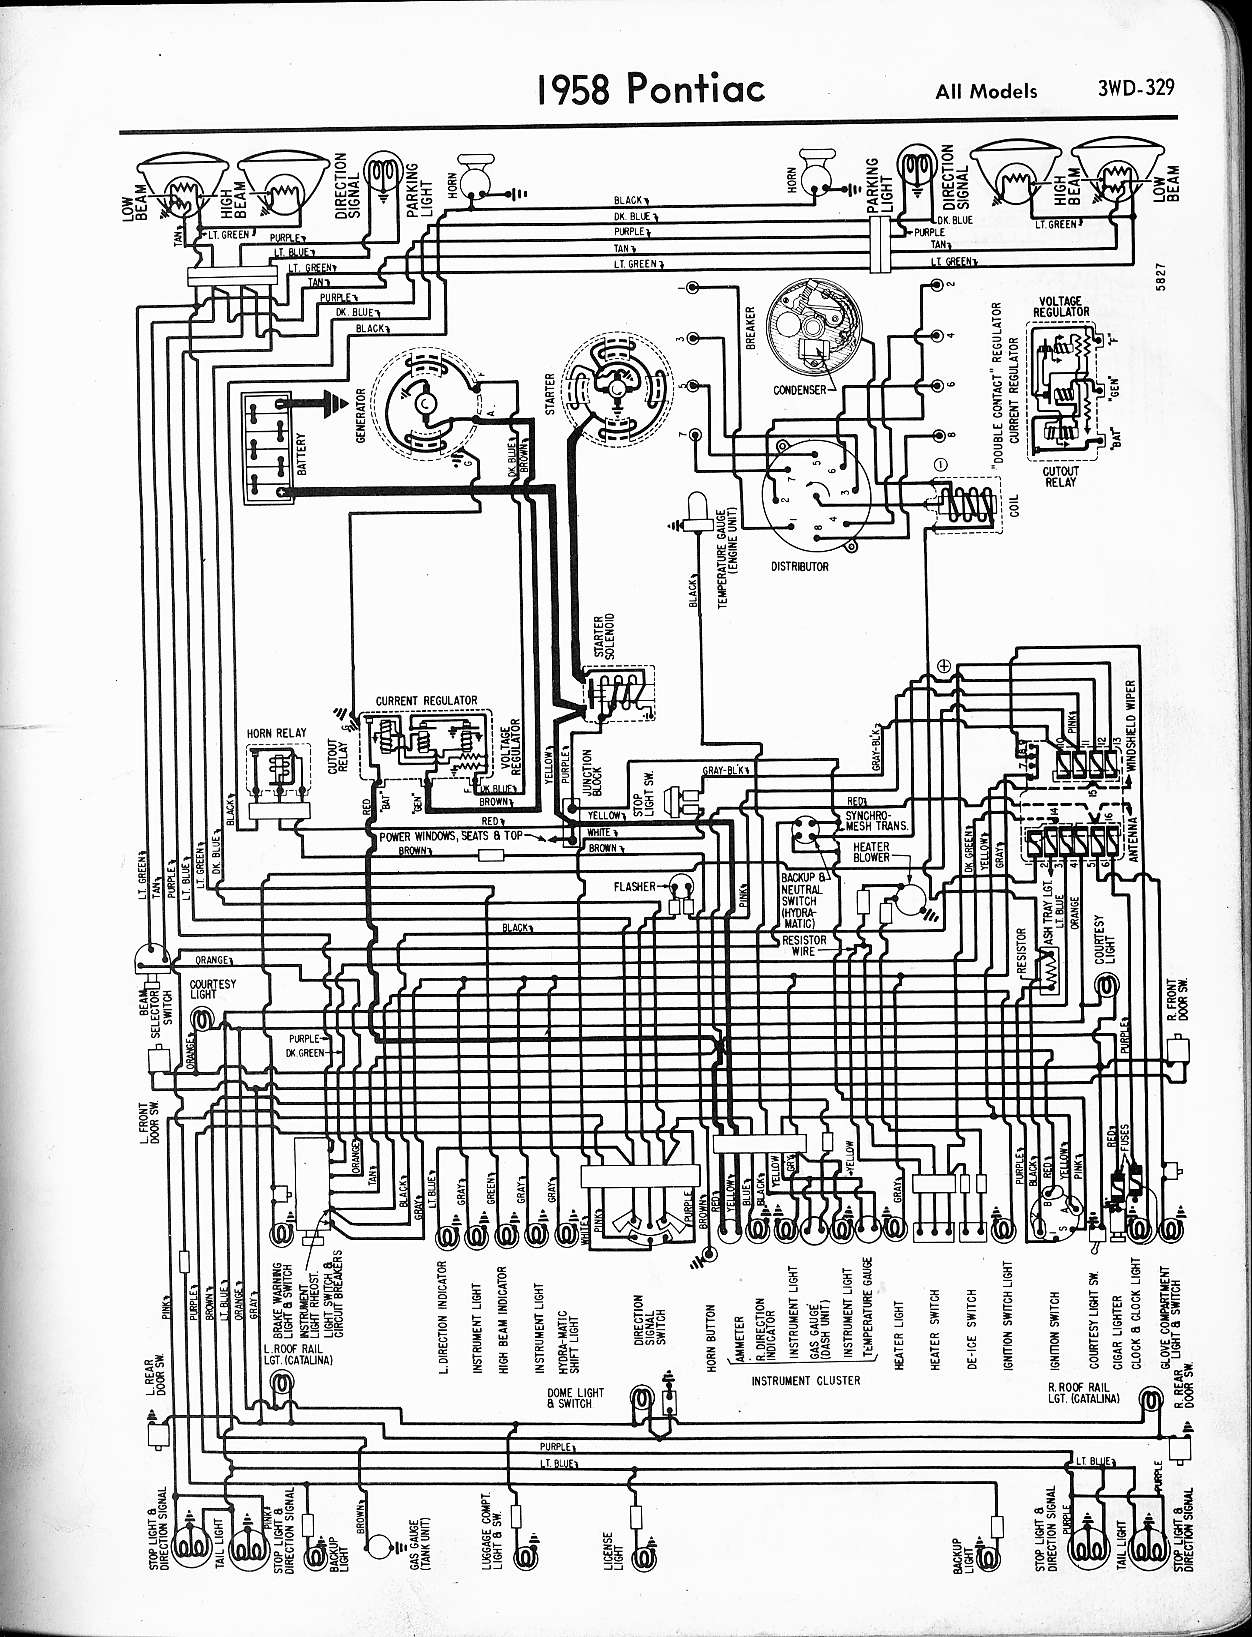 wallace racing wiring diagrams rh wallaceracing com 1970 pontiac firebird wiring diagram 1970 pontiac firebird wiring diagram